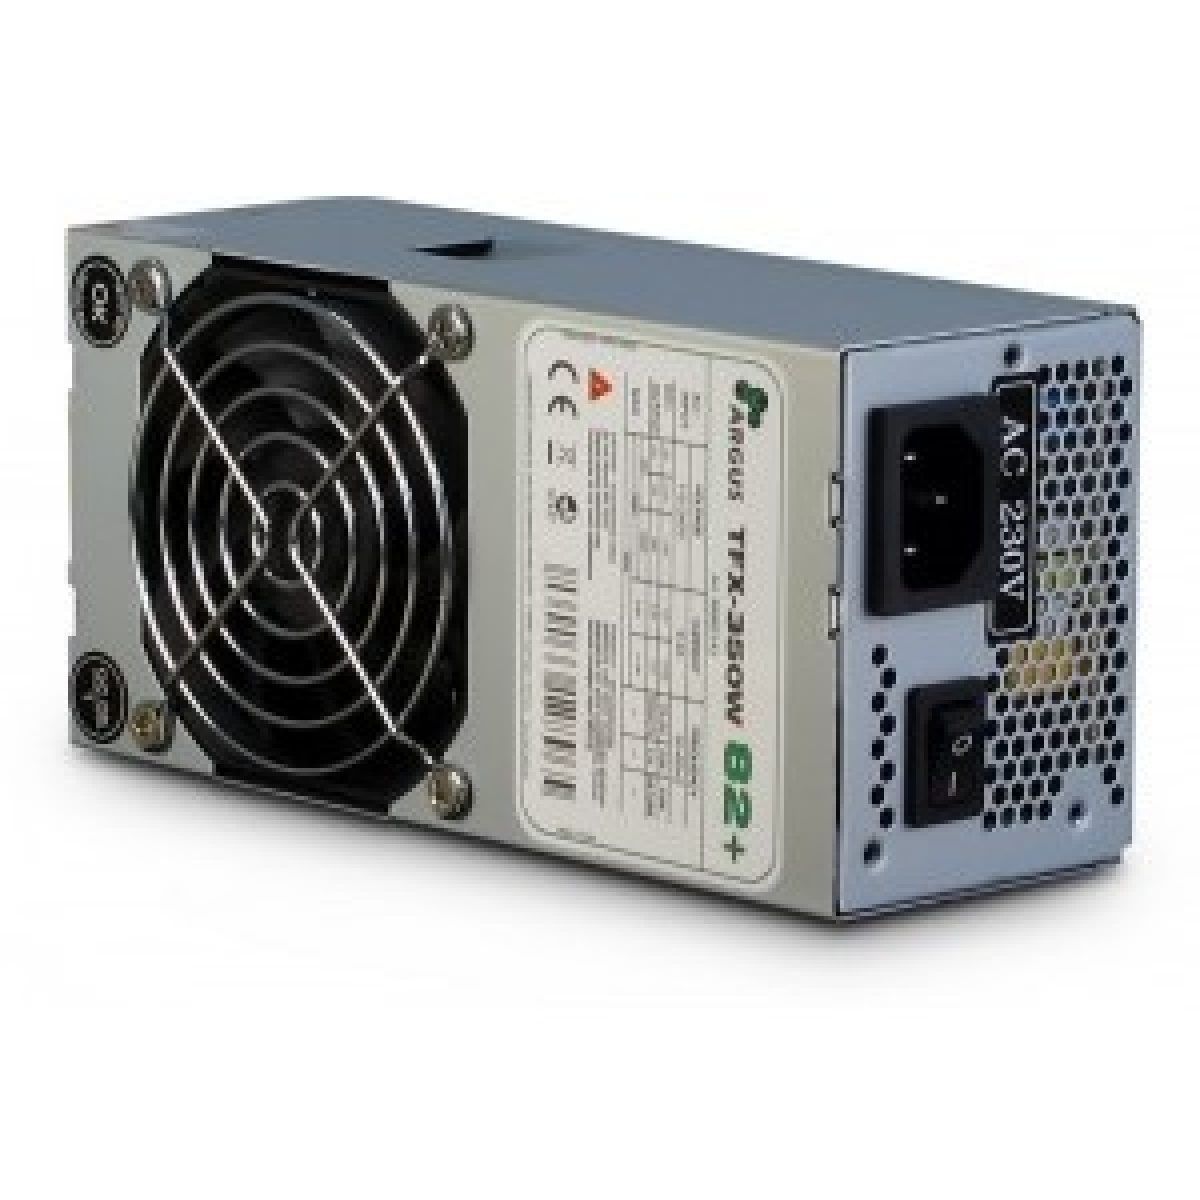 Sursa Argus ,350W ,TFX ,PSU ,SATA ,bulk ,single rail